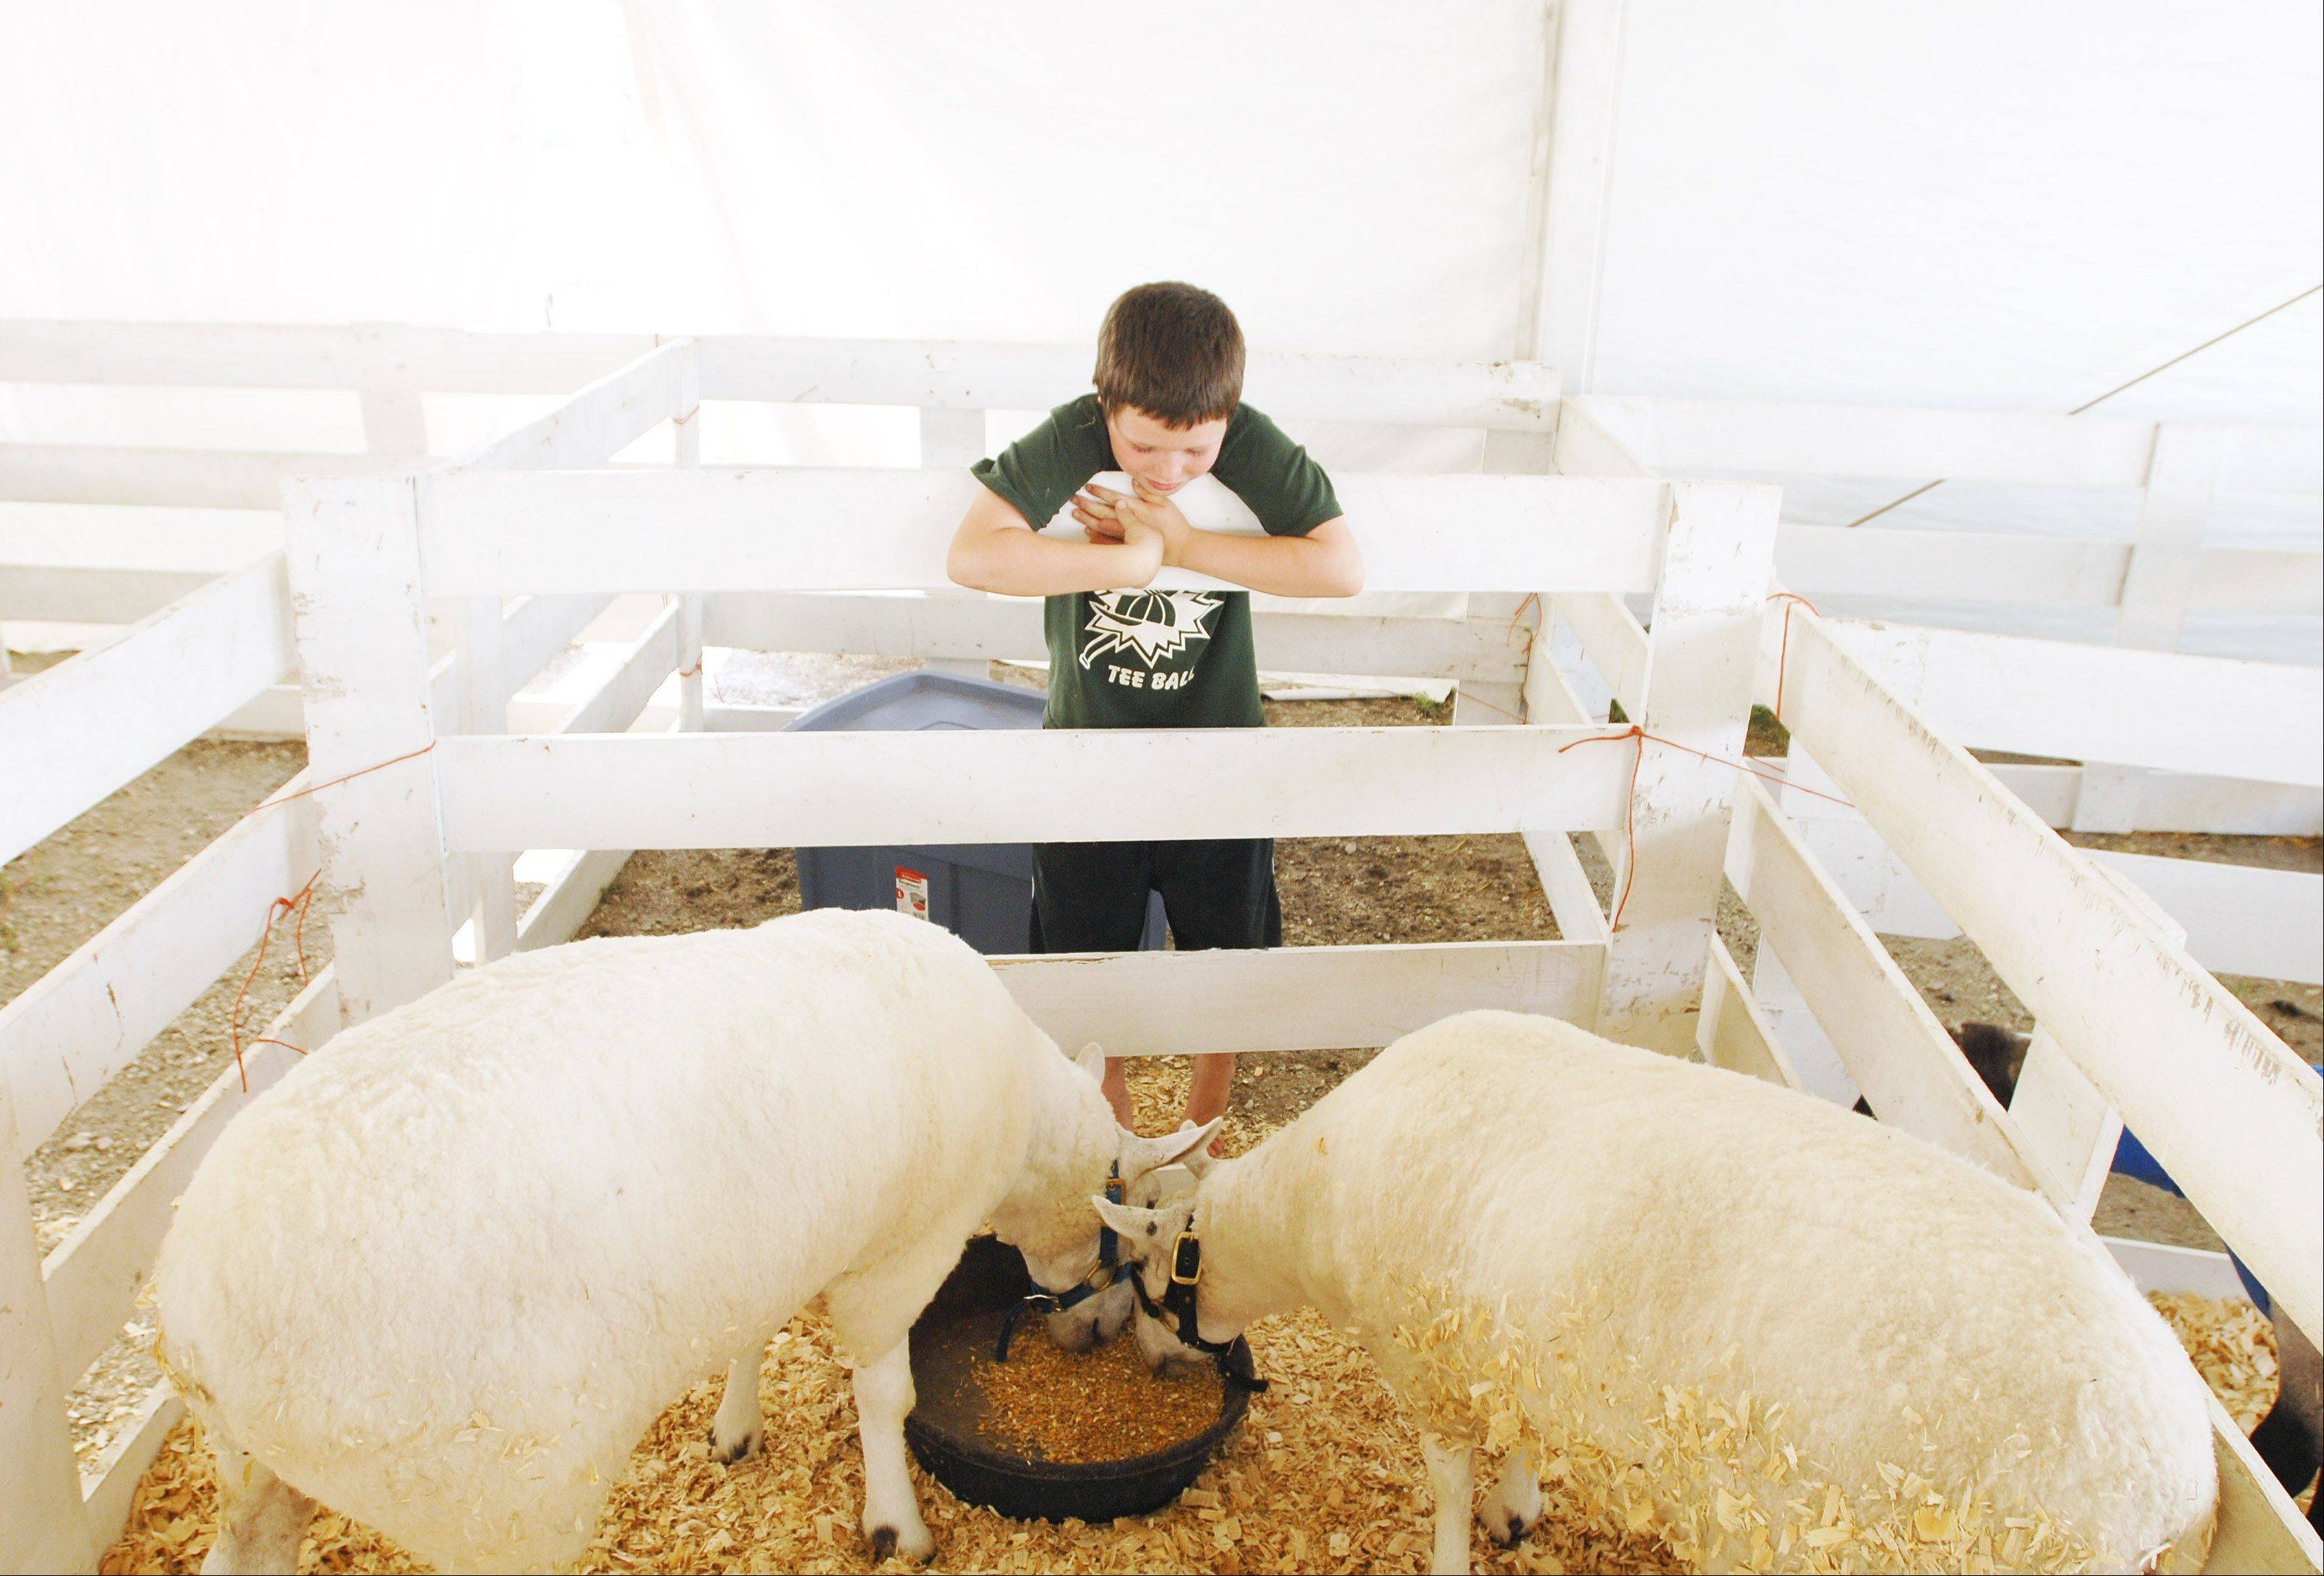 Oli Barraclough, 9, of Glen Ellyn tends to his sheep in preparation for today's opening of the DuPage County Fair. Find more fair coverage in today's NEIGHBOR.